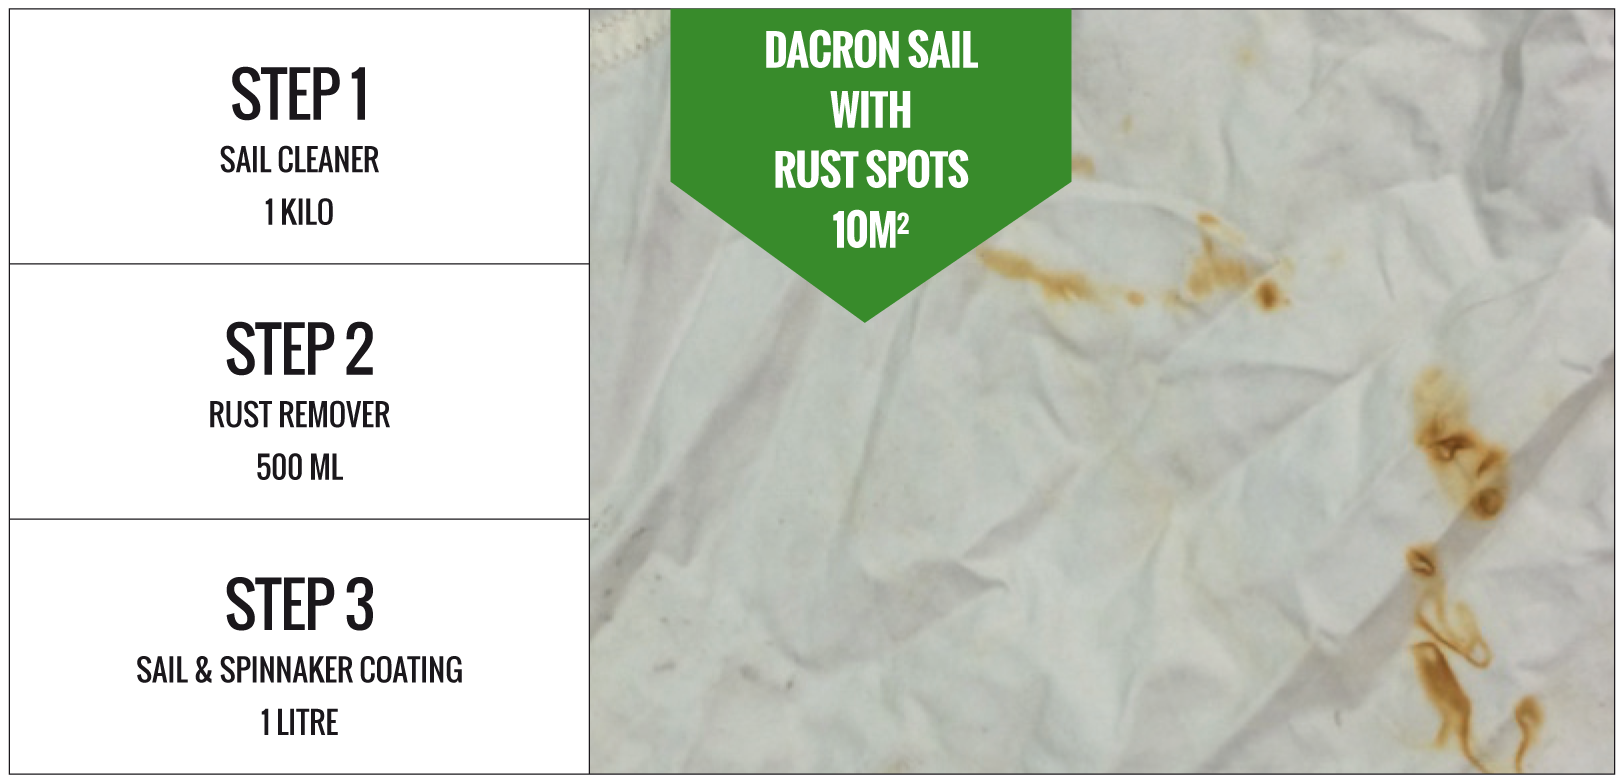 Required Dacron sail with rust spots 10m2